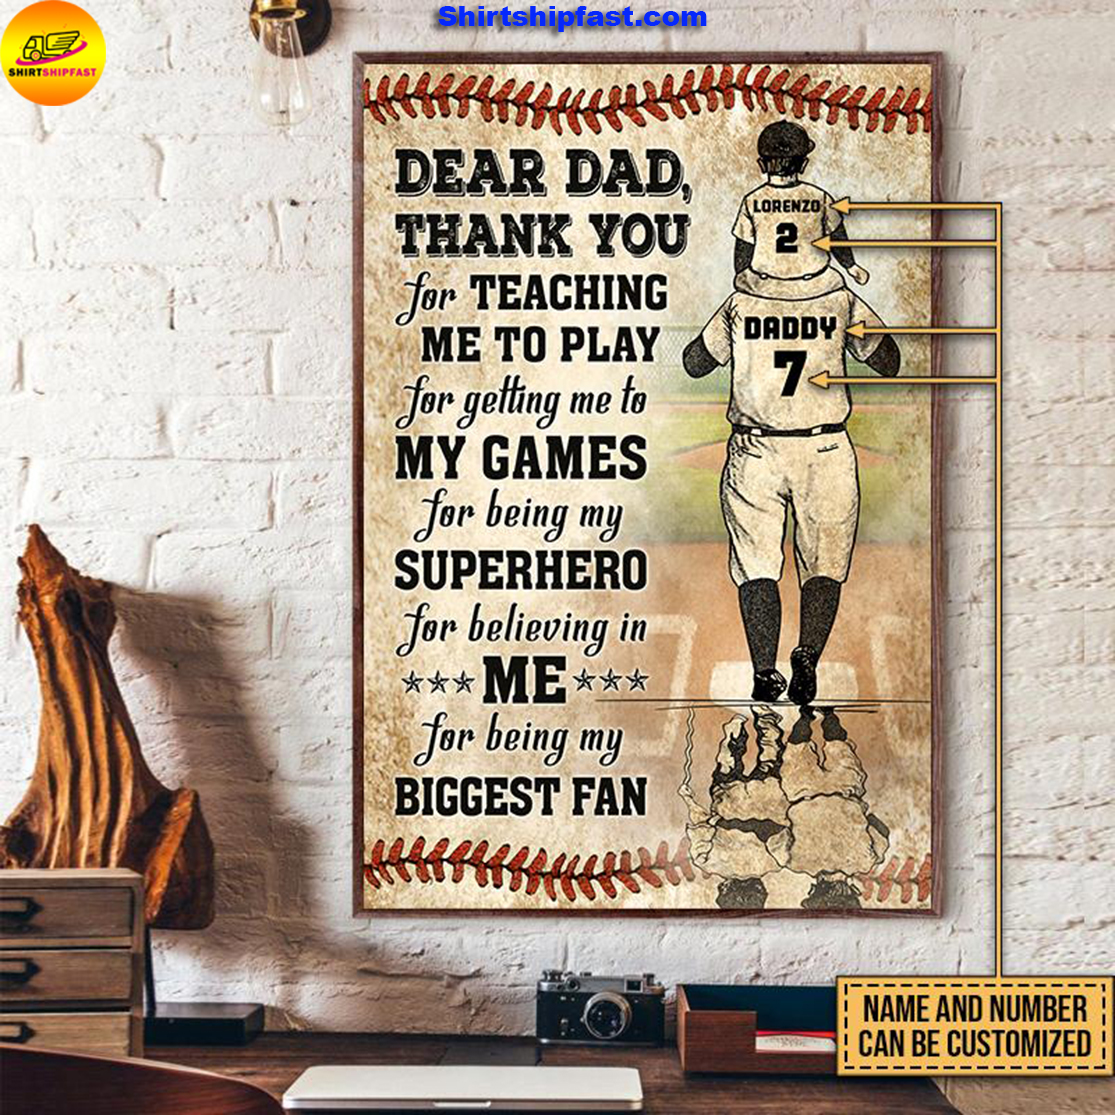 Personalized baseball dad and son thank you customized poster - Picture 3